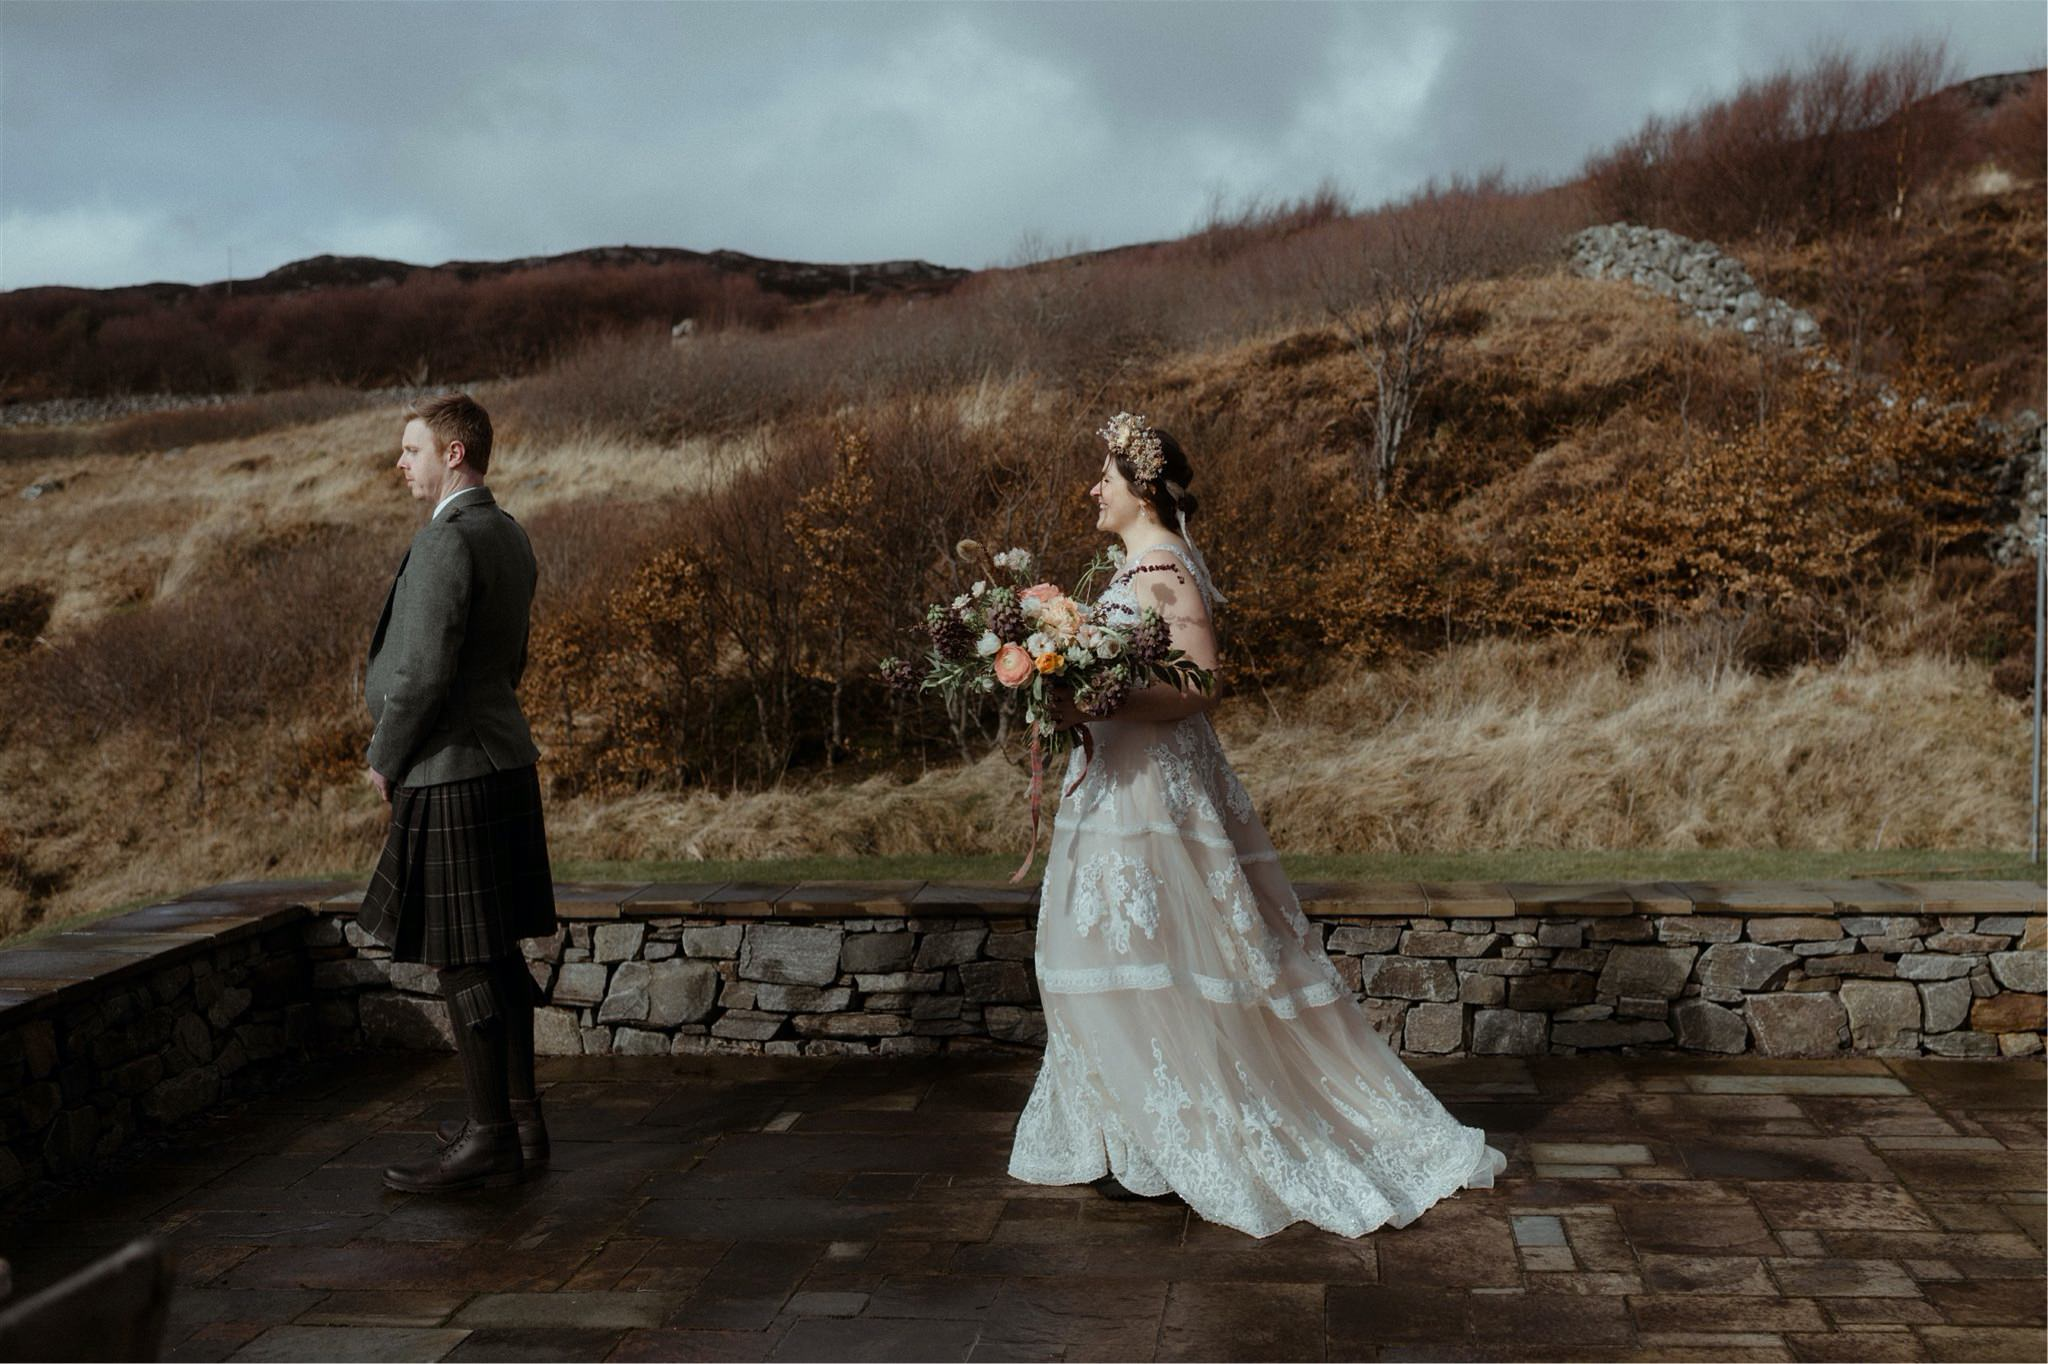 First look between bride and groom at their elopement wedding in Assynt, Scotland